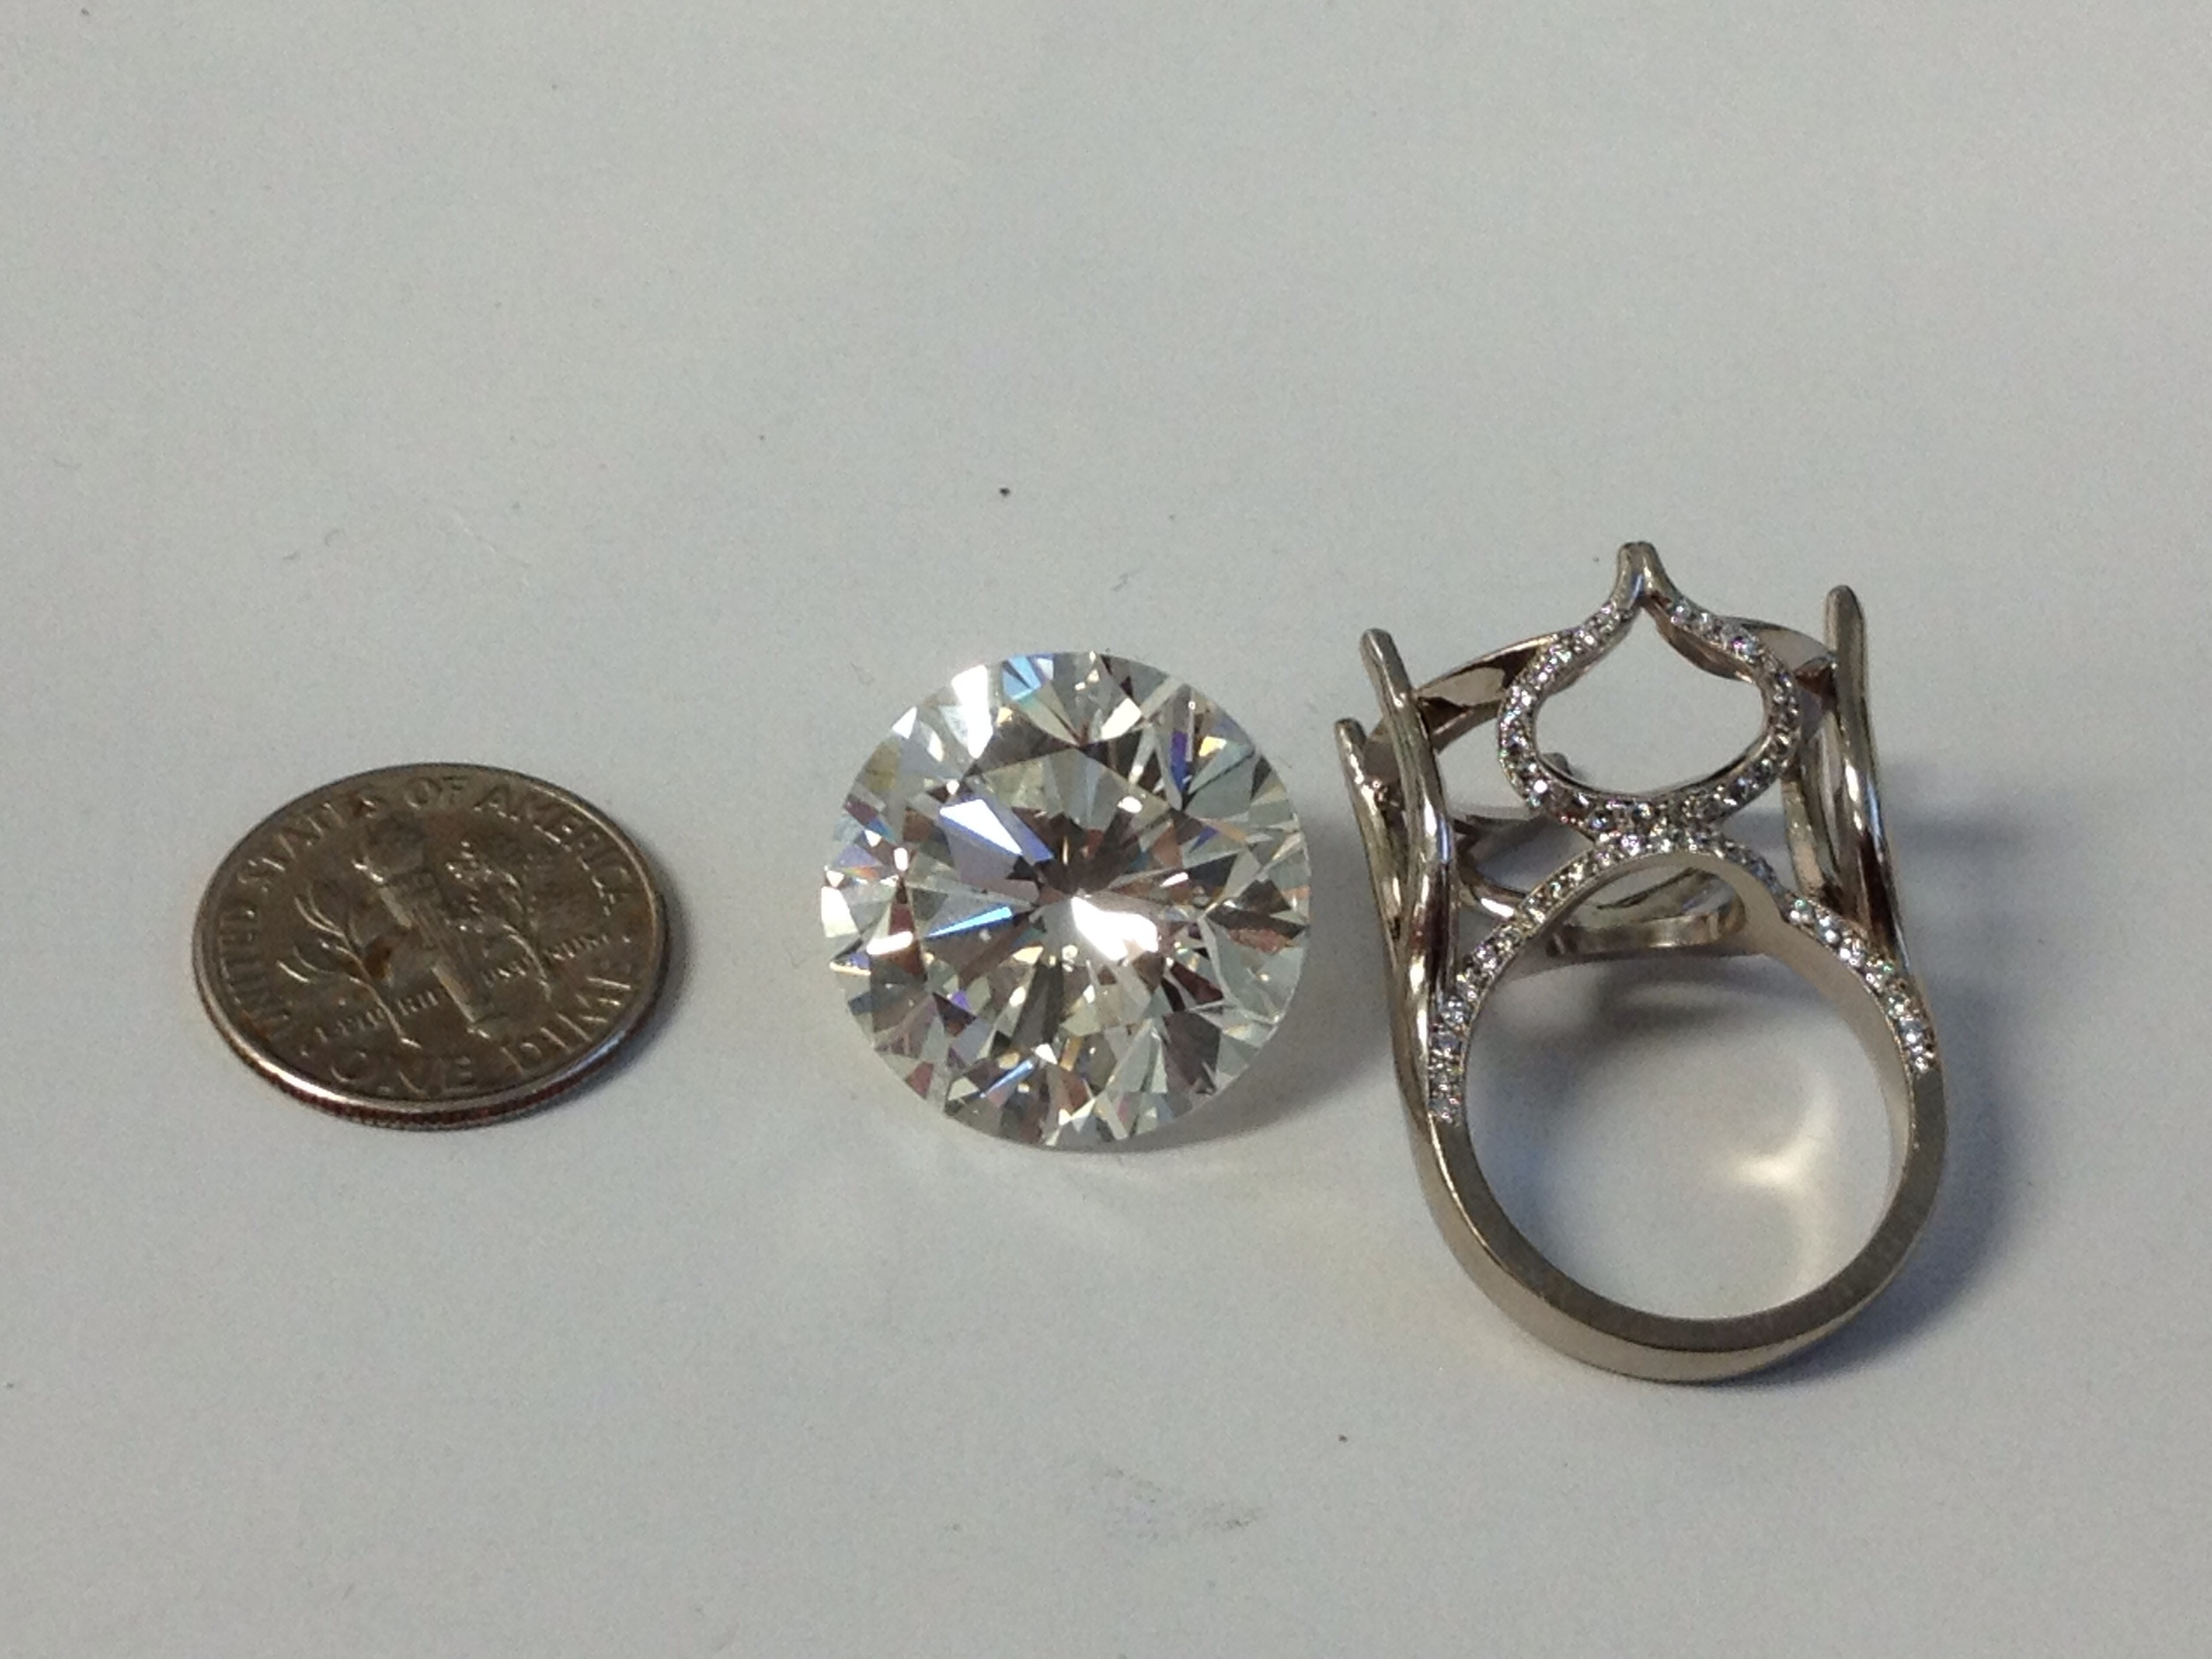 Diamond and ring cast, ready for setting